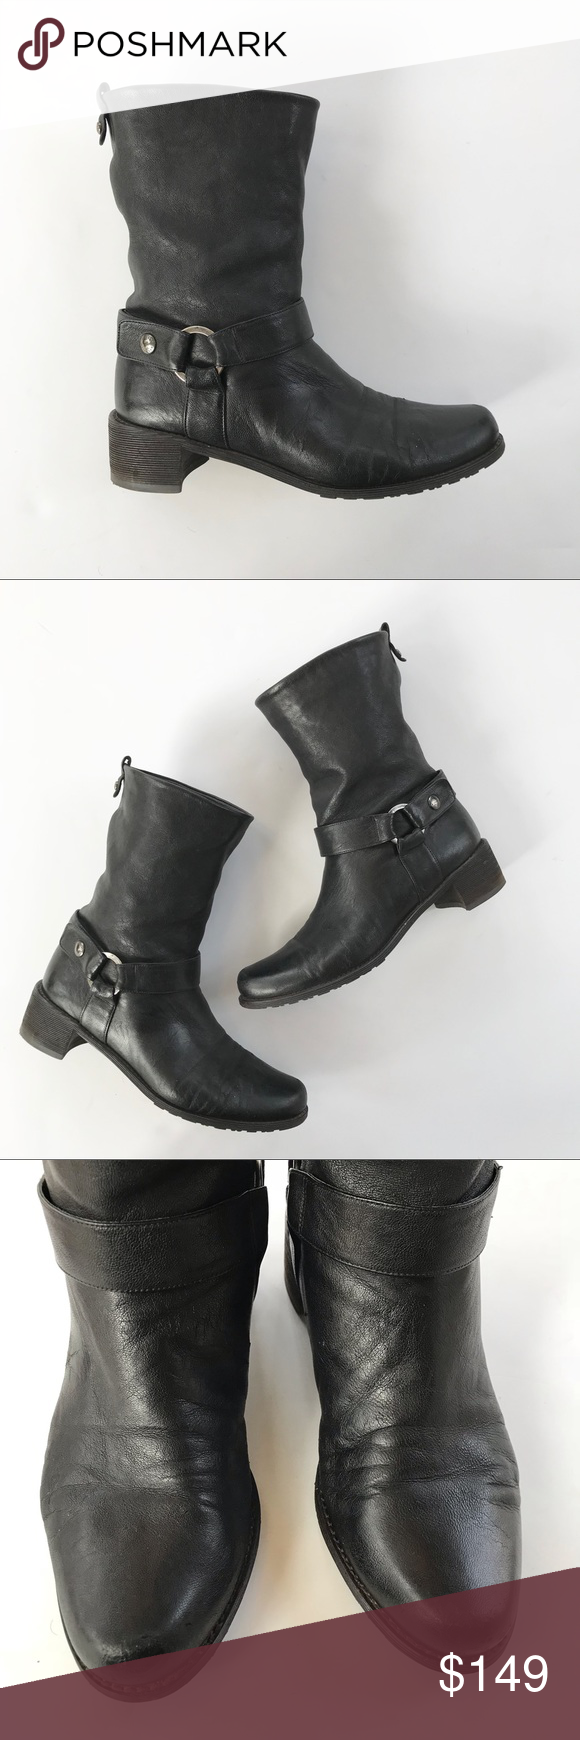 3421dd9bf9 Stuart Weitzman Black Moto Pull On Boot 8 Butter soft these Stuart Weitzman  moto boots offer comfort and style. Easy pull on styling.